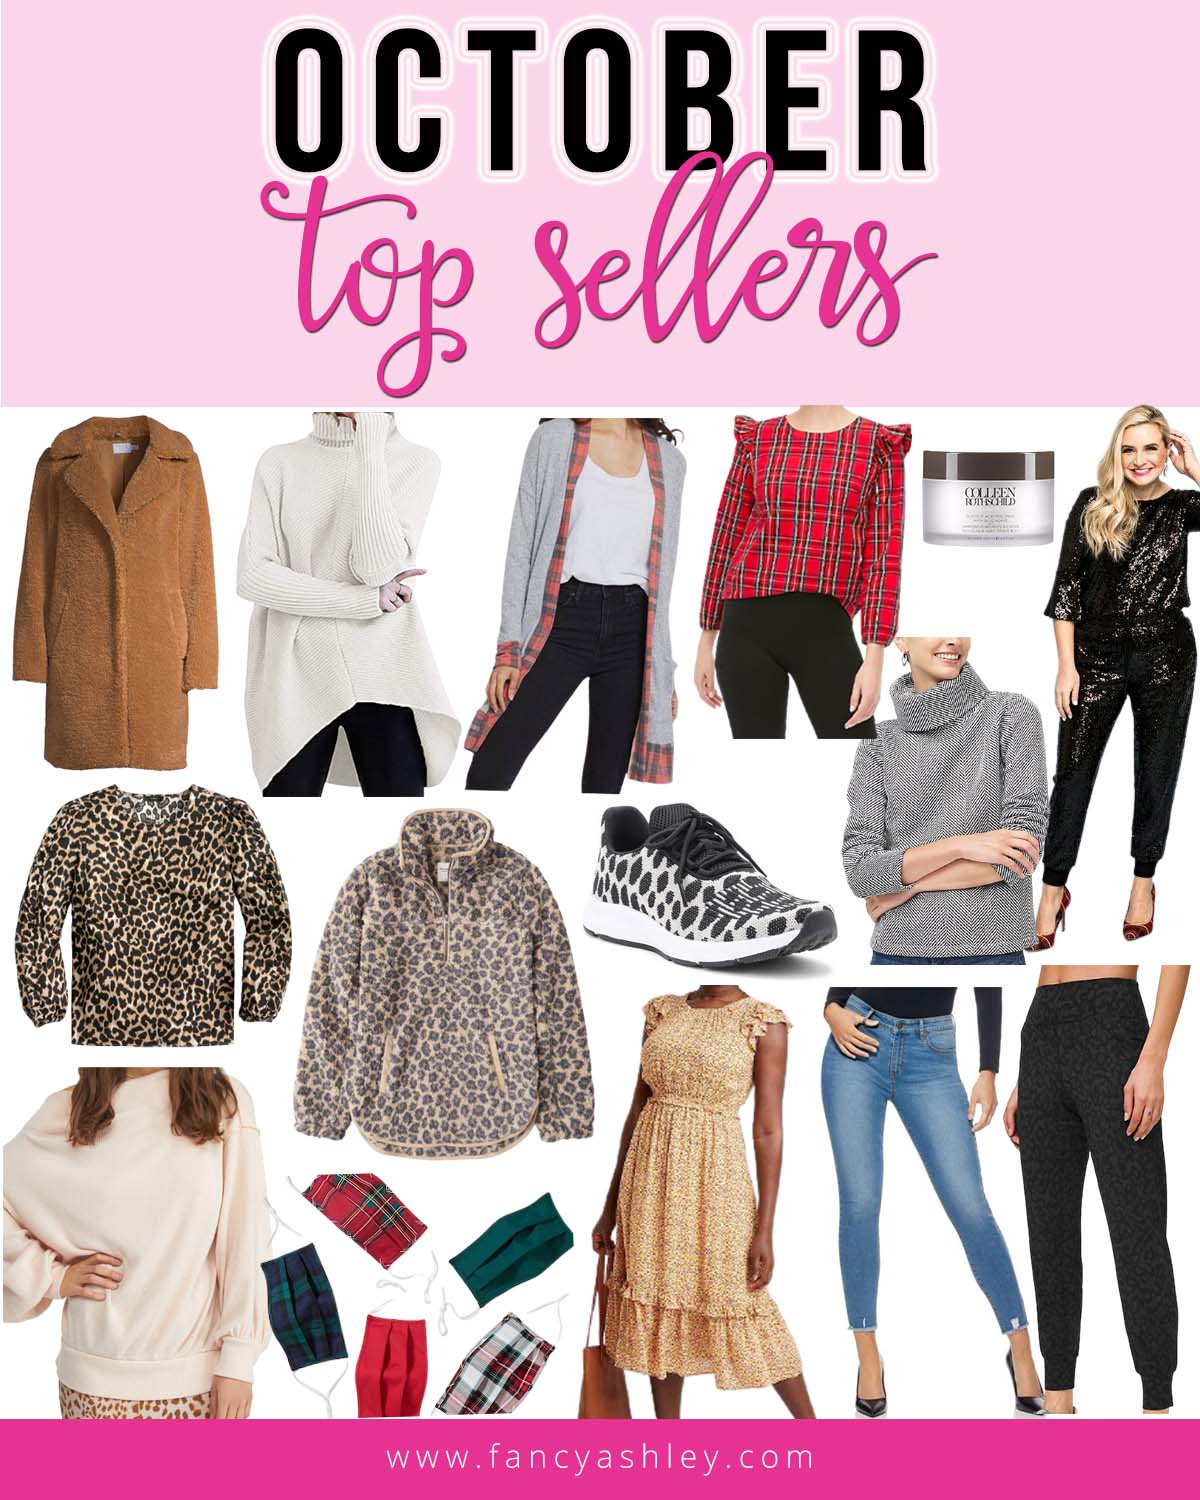 Top Selling Items by popular Houston fashion blog, Fancy Ashley: collage image of plaid face masks, black sequin jumpsuit, leopard print shirt, leopard print fleece pullover, plaid ruffle top, jeans, grey turtle neck sweater, Colleen Rothschild peel pads, cardigan, floral print ruffle hem dress, leopard print joggers, cream batwing sweater, and pullover tunic turtle neck sweater.